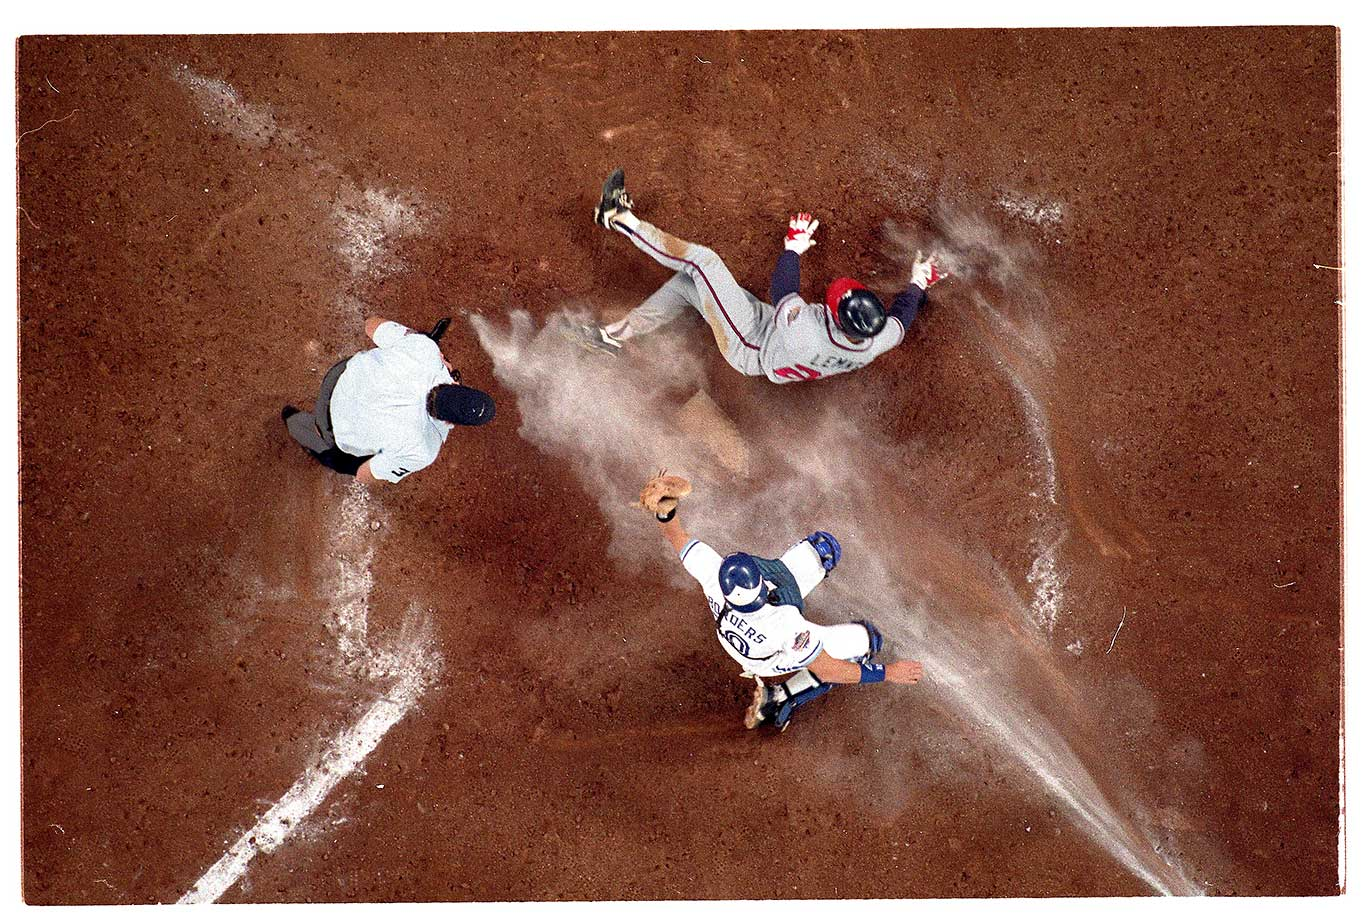 Toronto catcher Pat Borders making the tag at on Mark Lemke of the Atlanta Braves in Game 6 of the 1992 World Series.